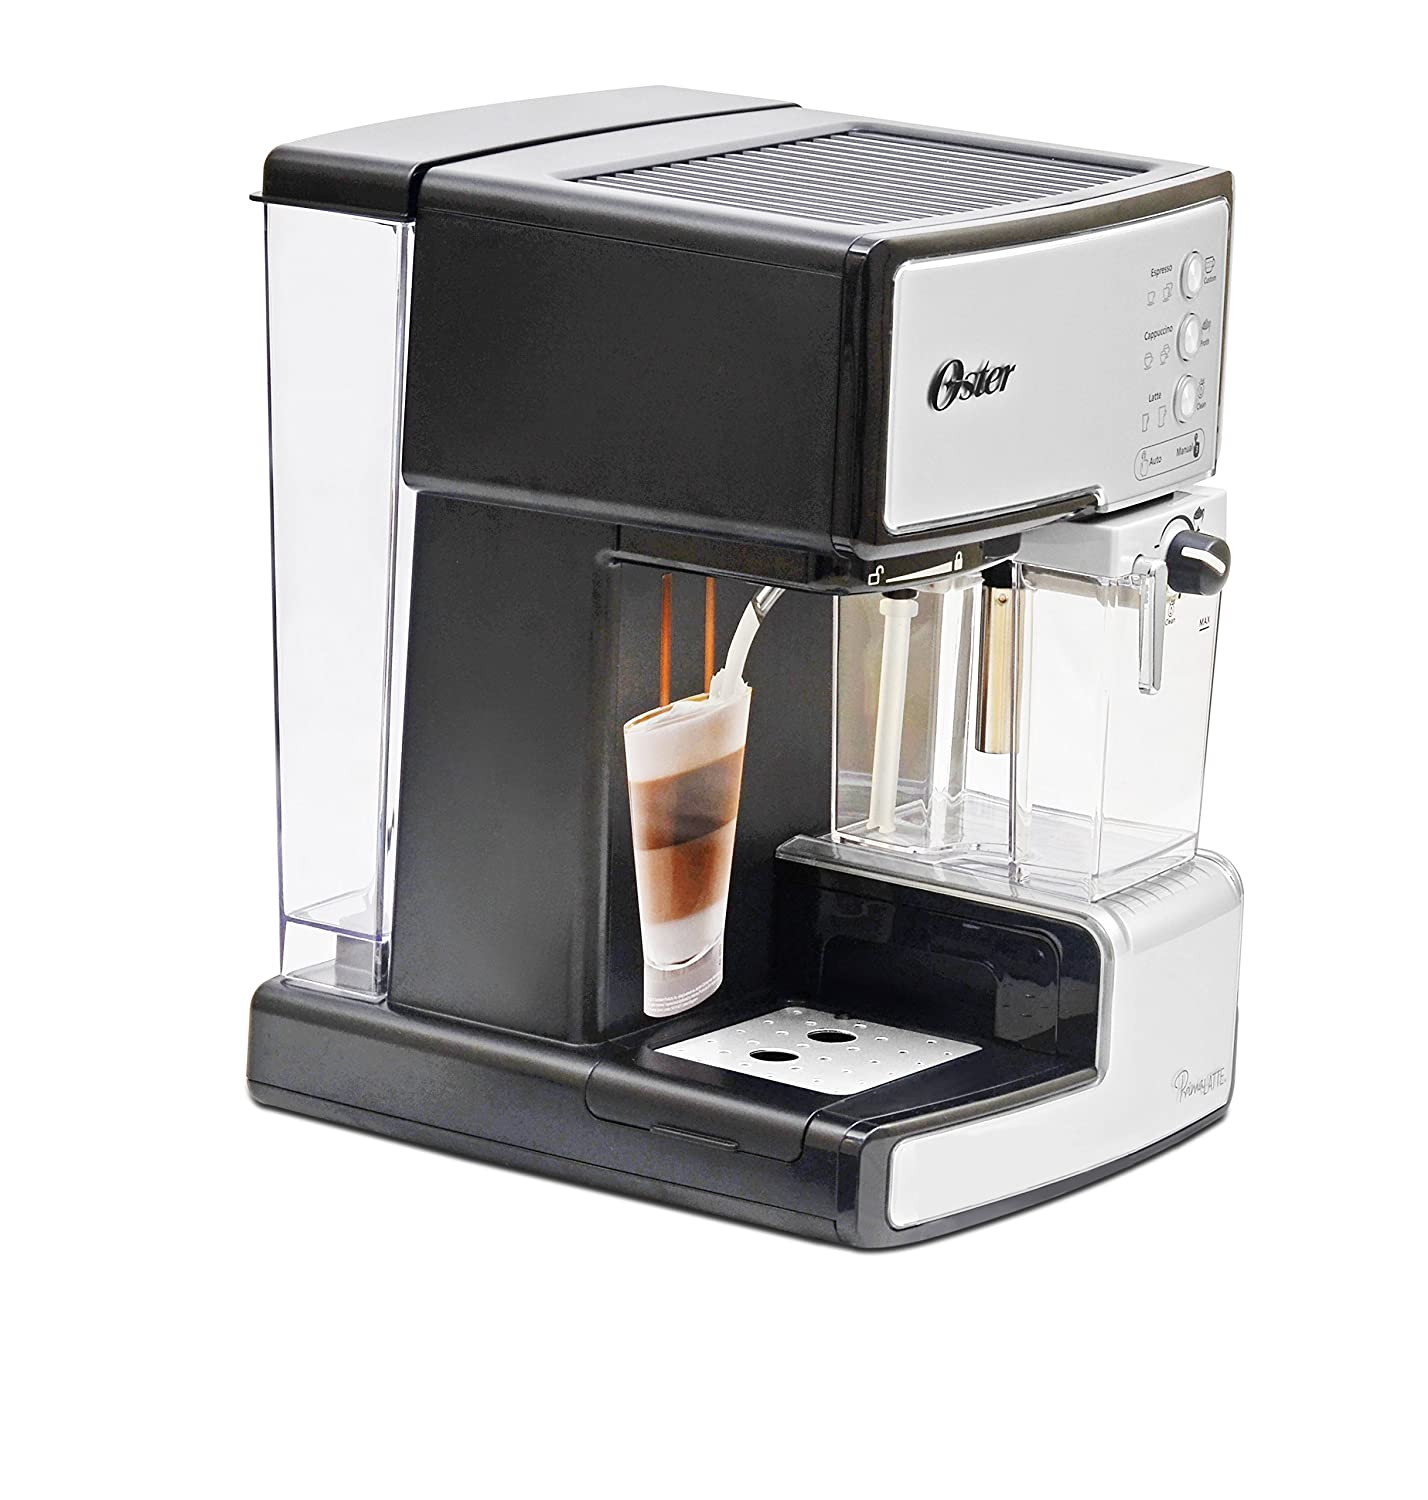 Oster Coffee Maker Doesnot Work : Oster BVSTEM6601S-049 10 cups Coffee Maker (Silver)